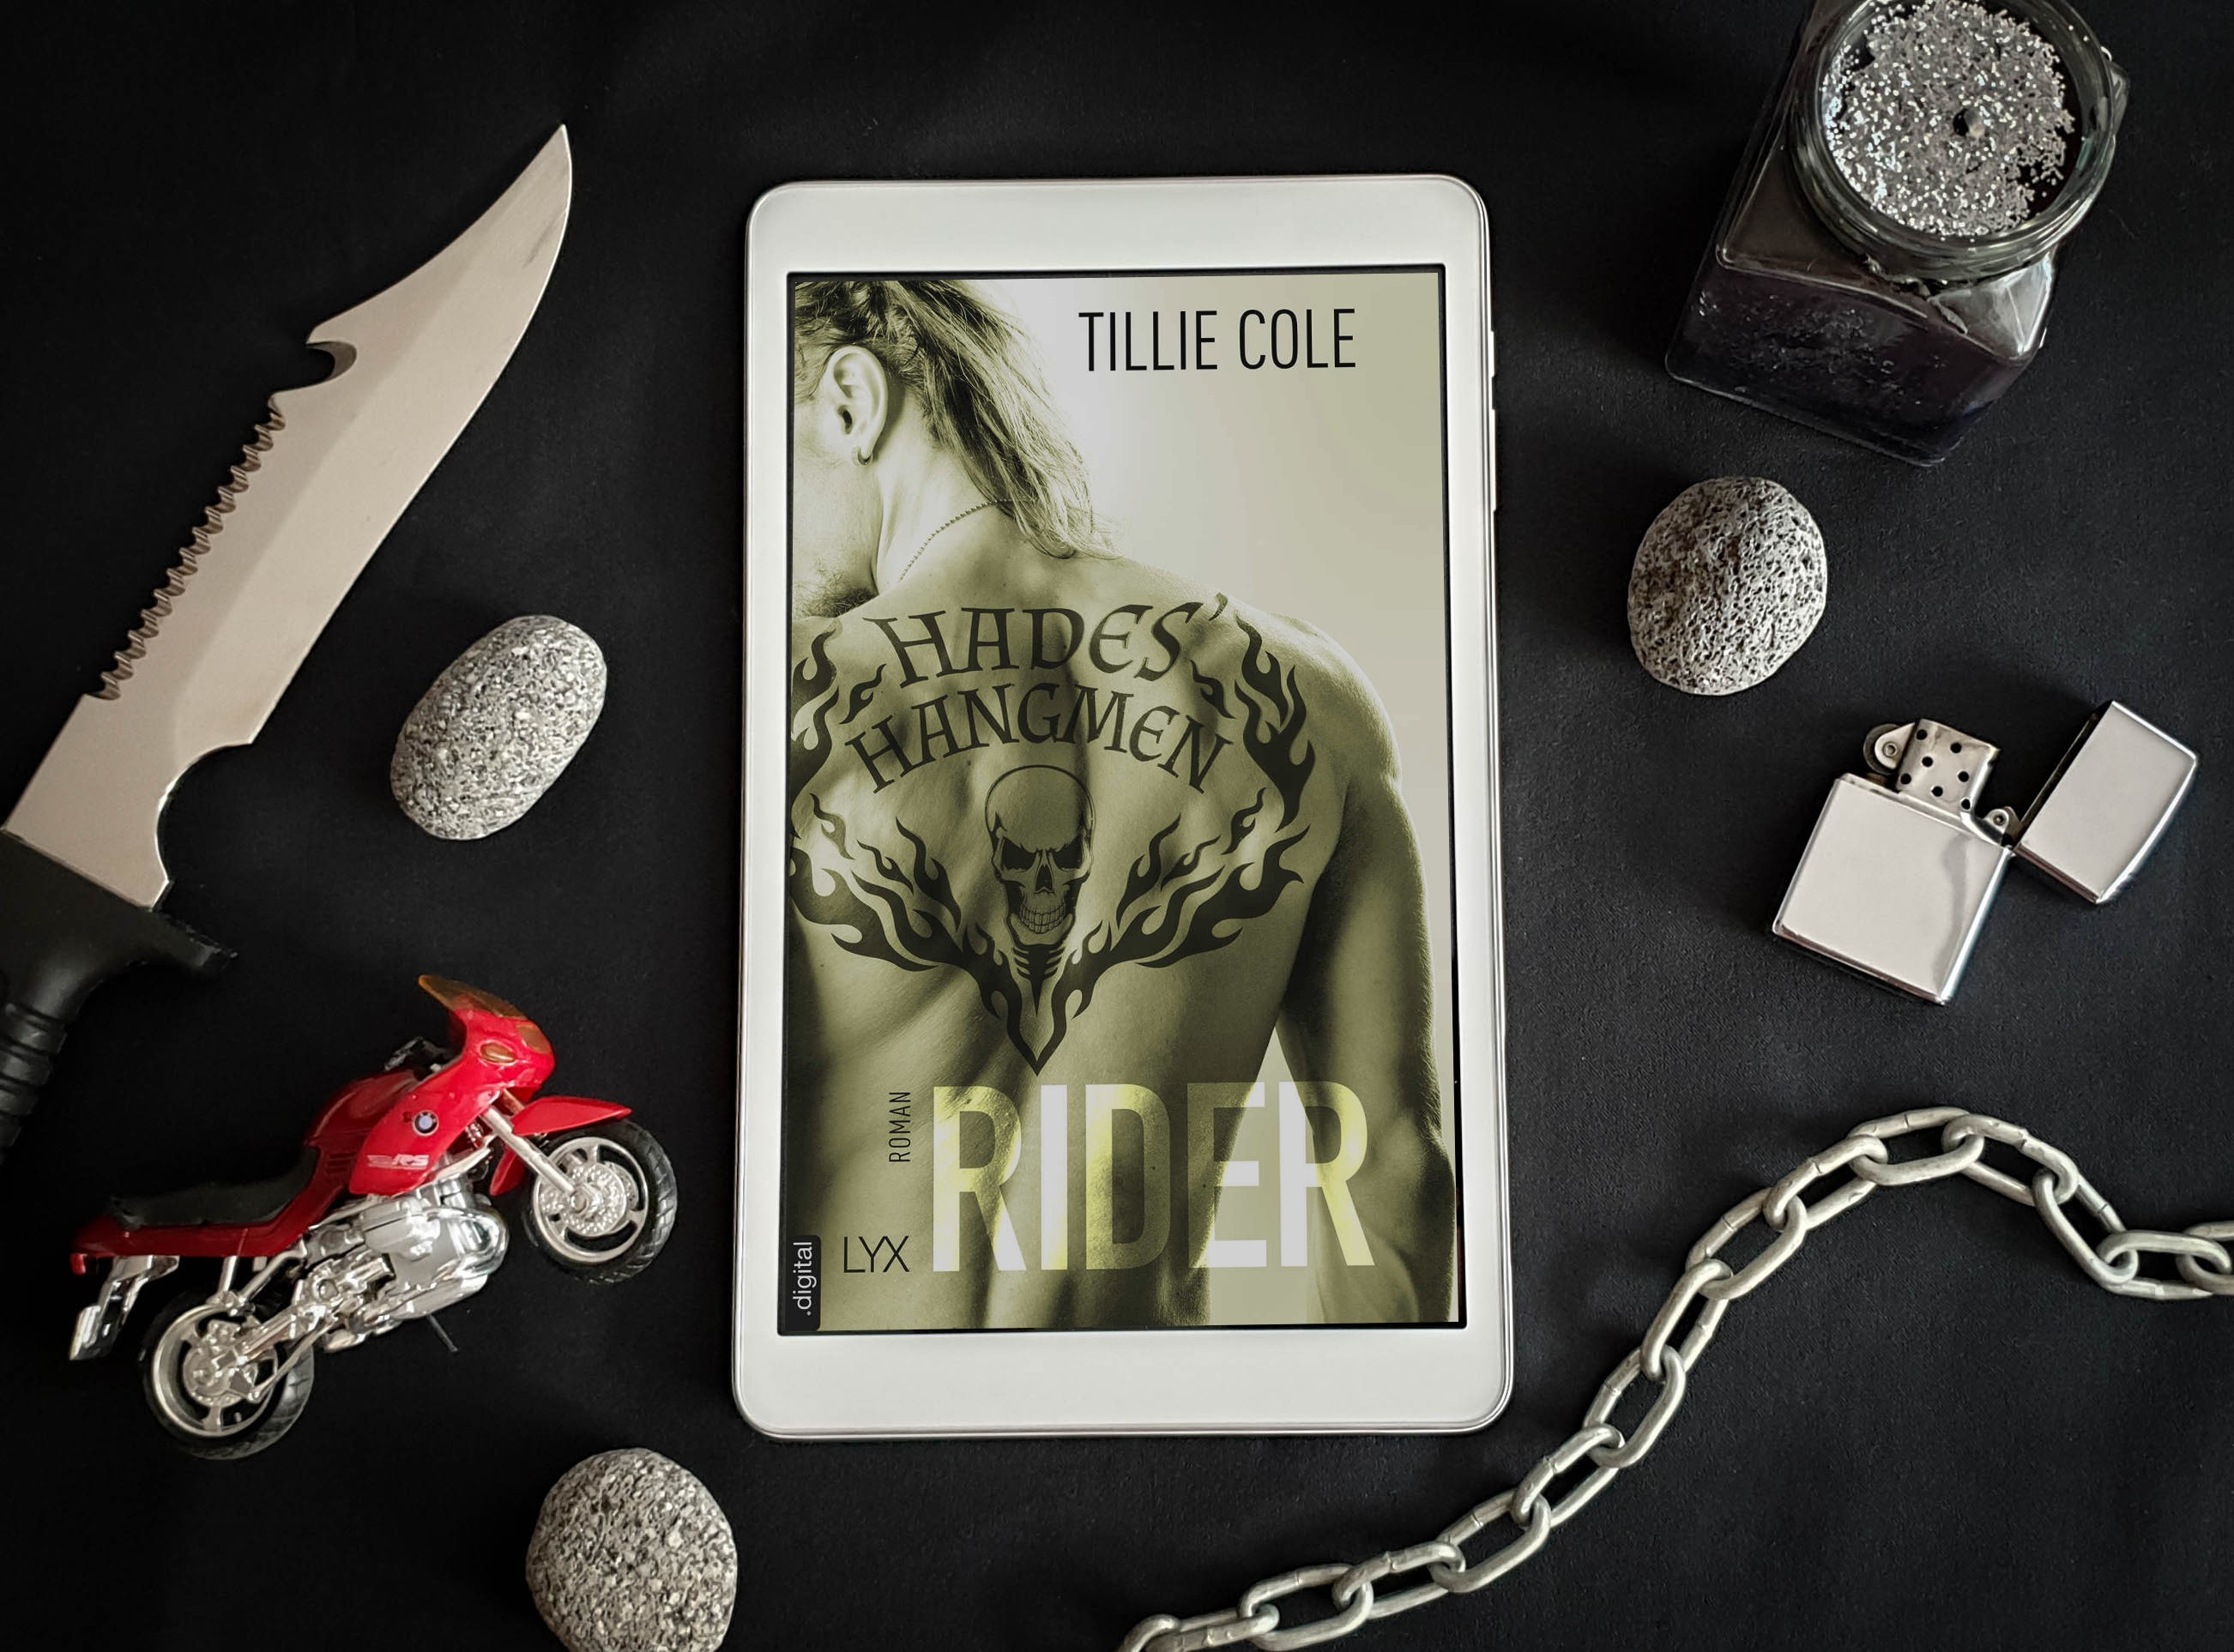 Hades' Hangmen: Rider (Band 4) – Tillie Cole graphic